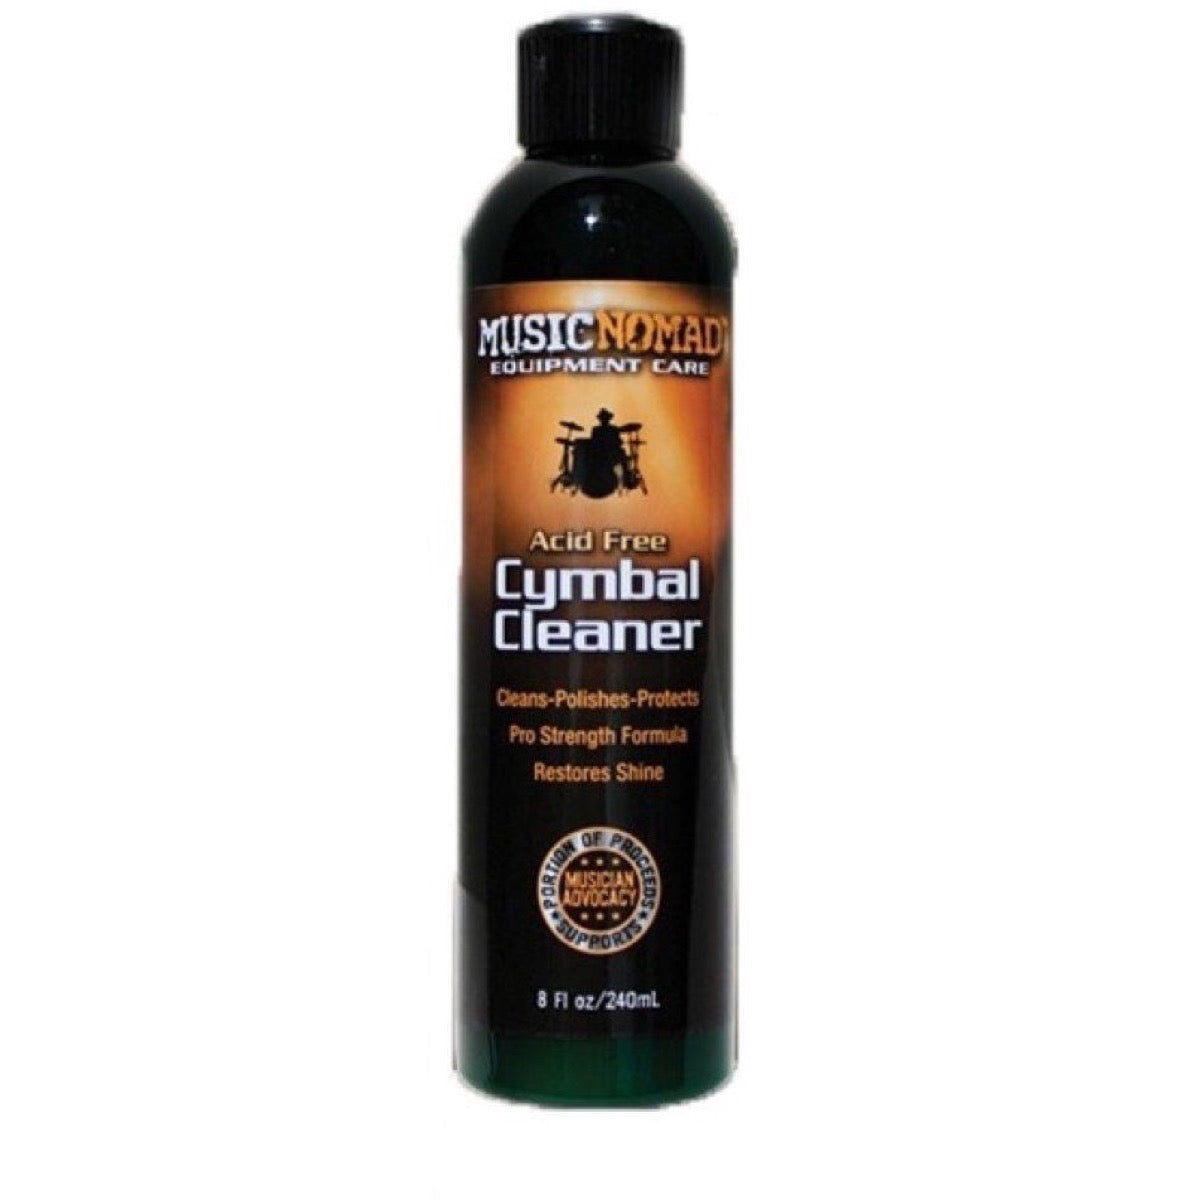 Music Nomad Drum Cymbal Cleaner and Polish